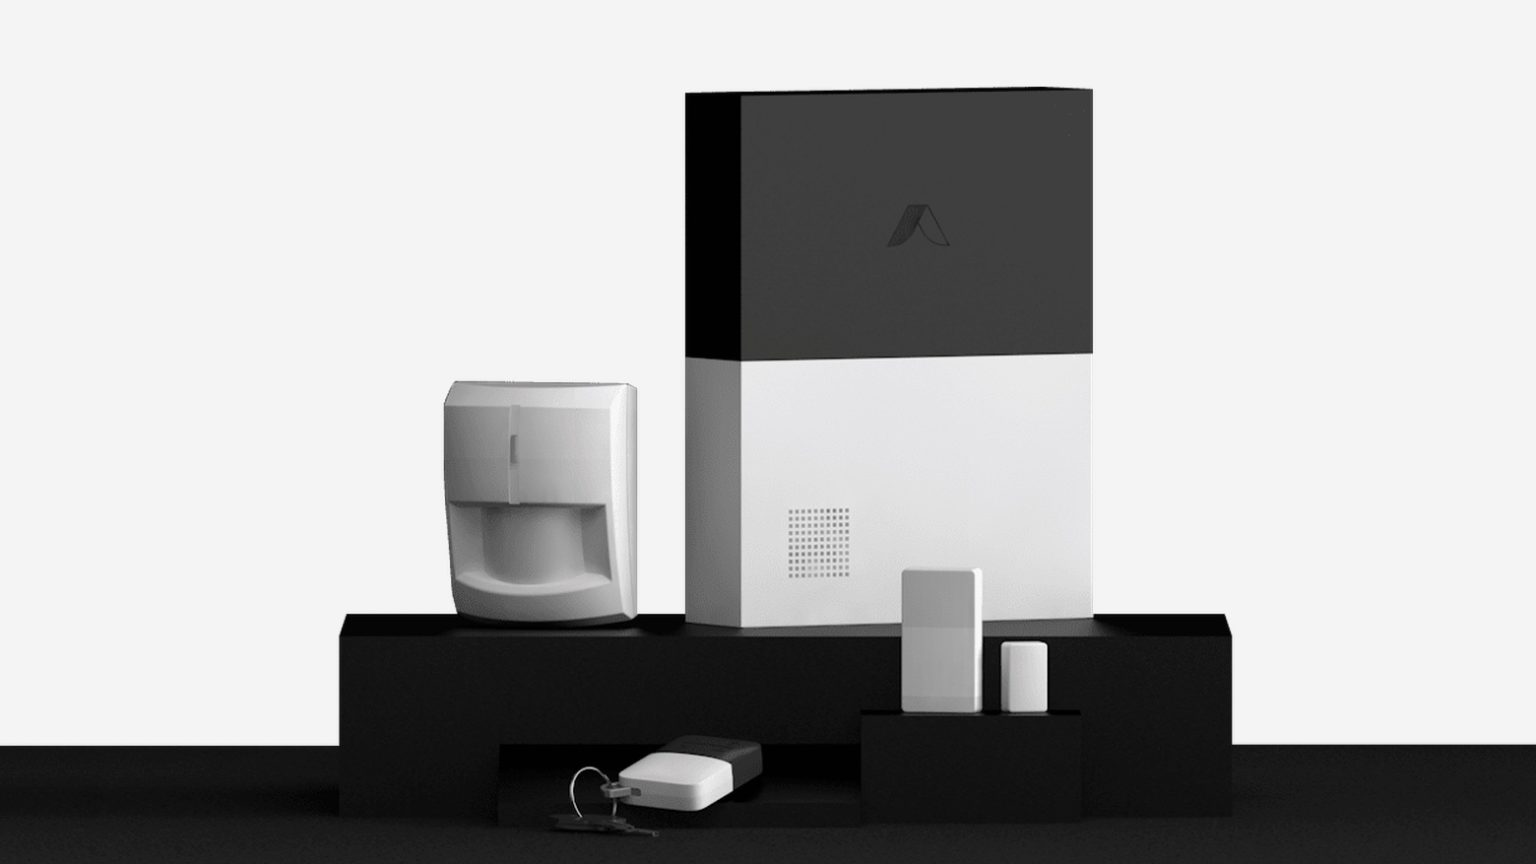 Abode Smart Security Kit gets you started